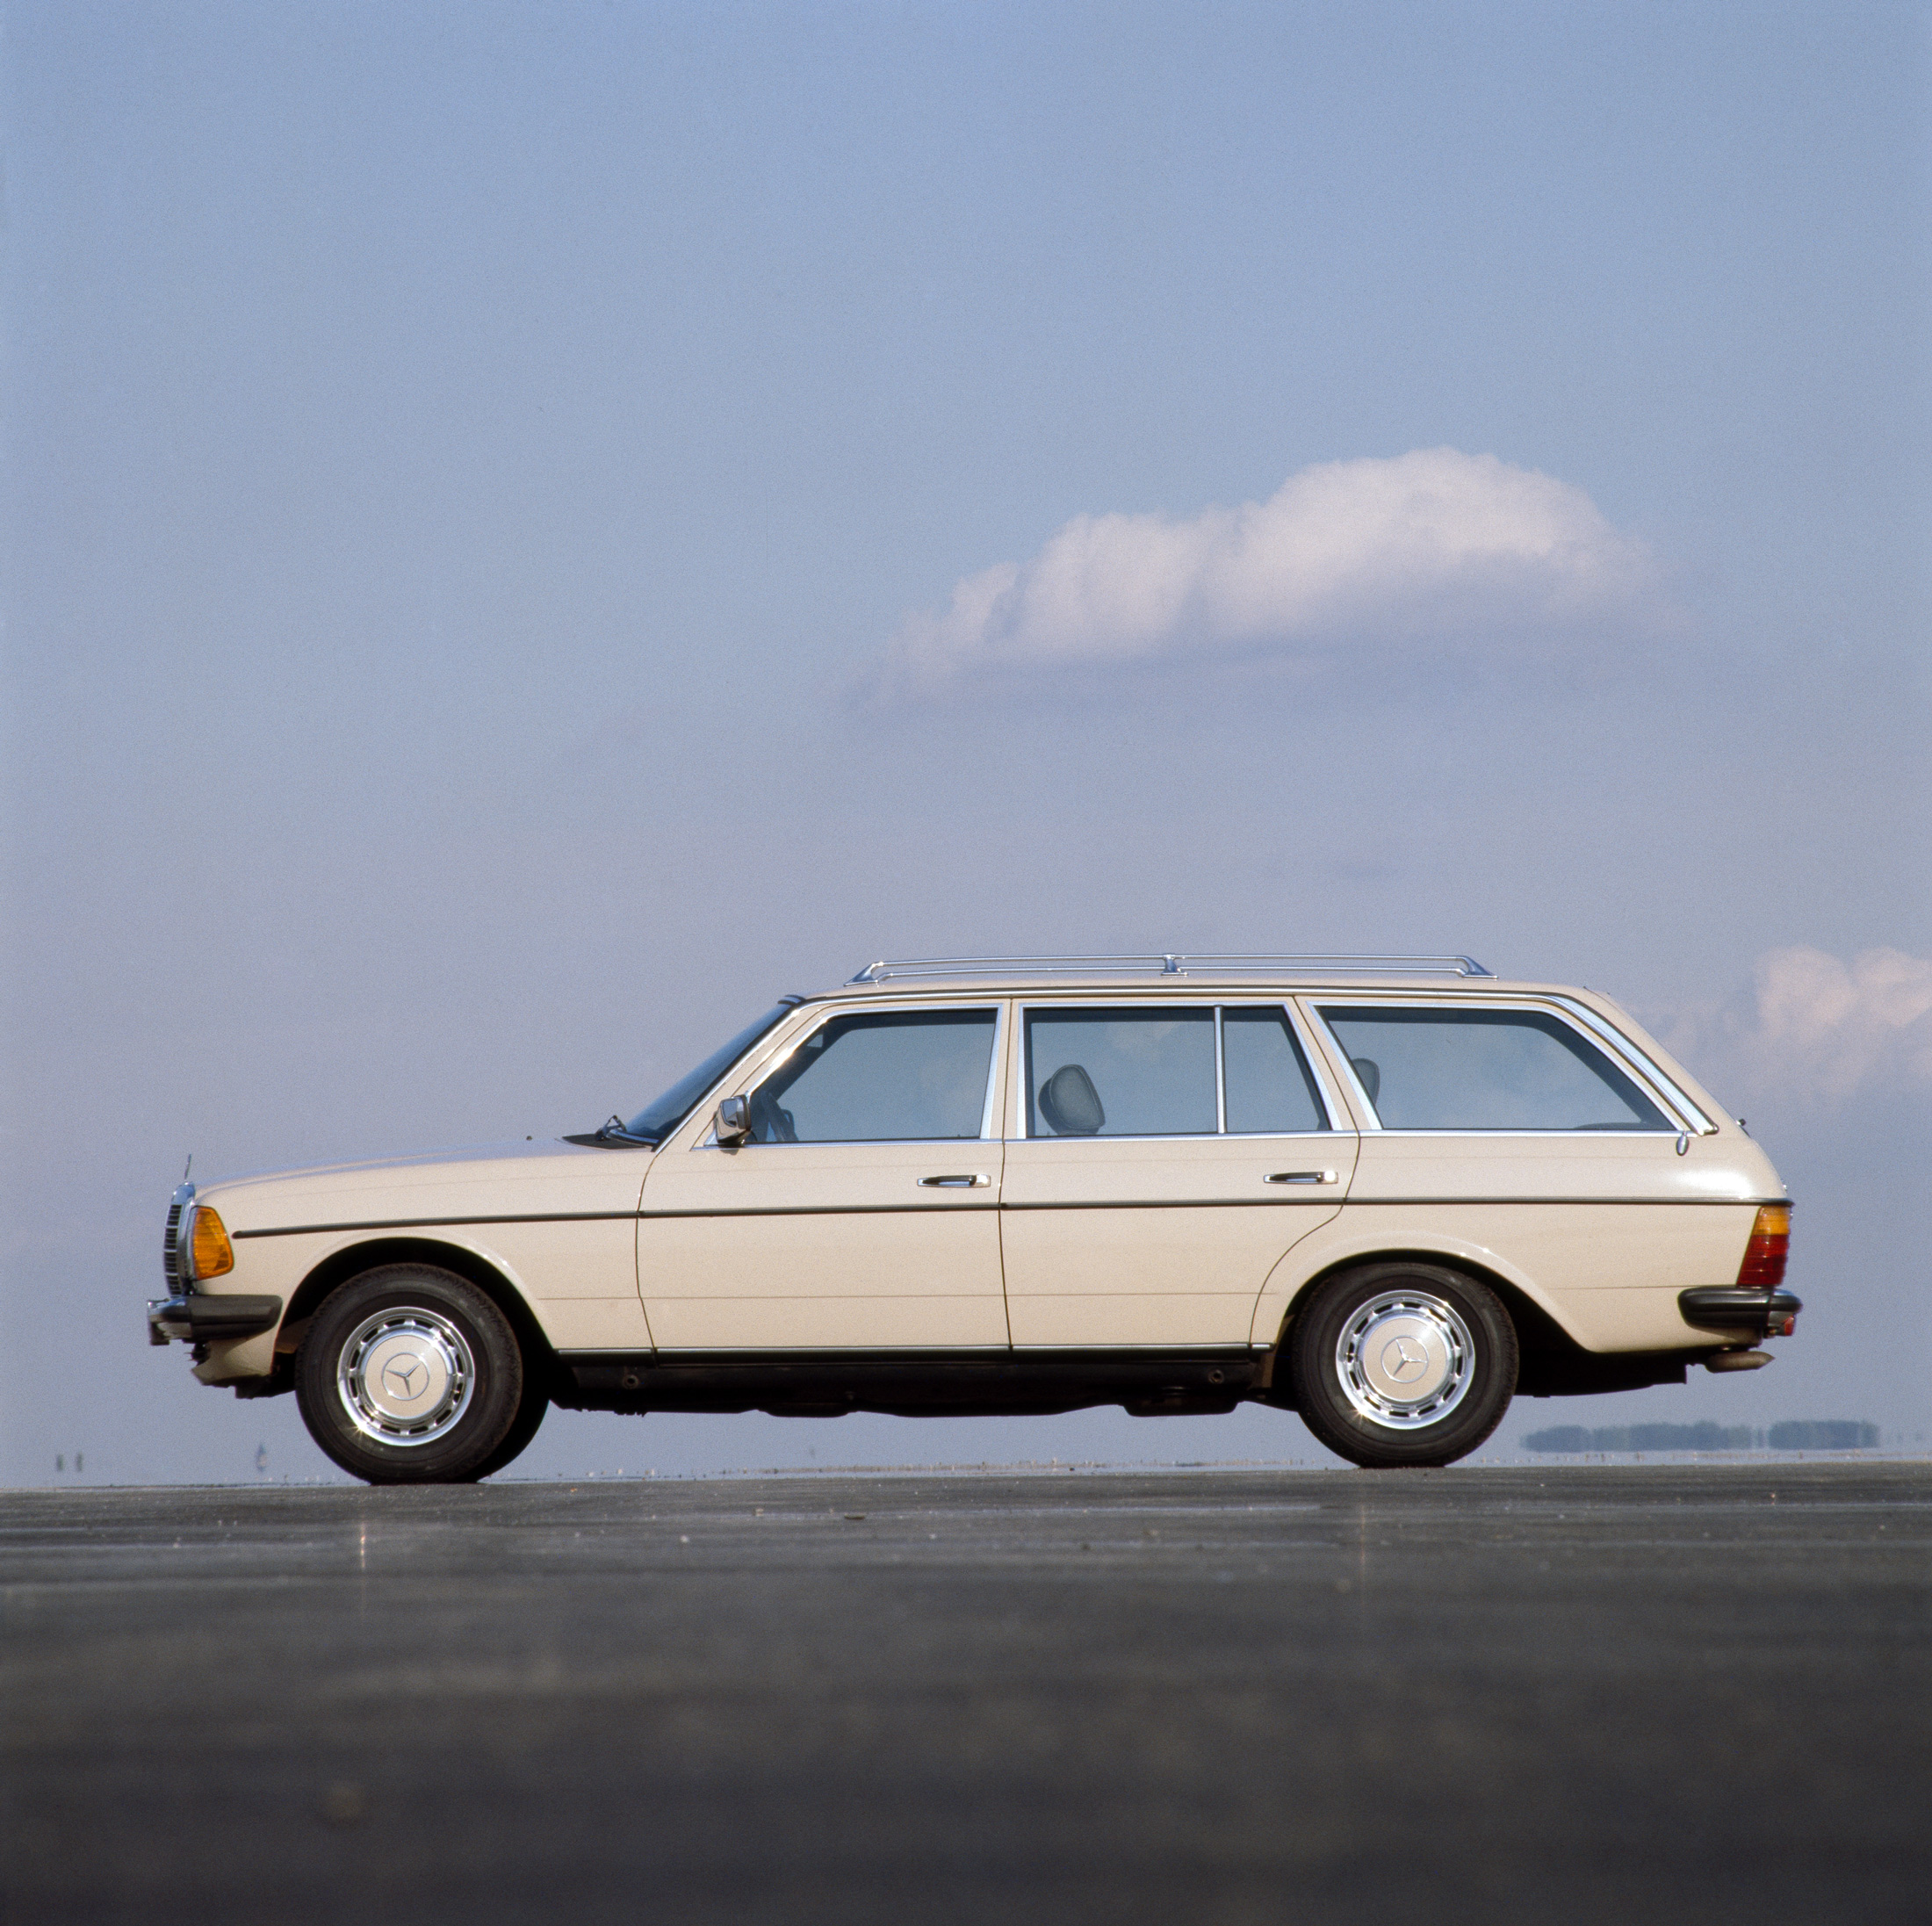 Mercedes W123 Interieur Te Koop Bloomberg Says Mercedes W123 Wagon Is The Car That Will